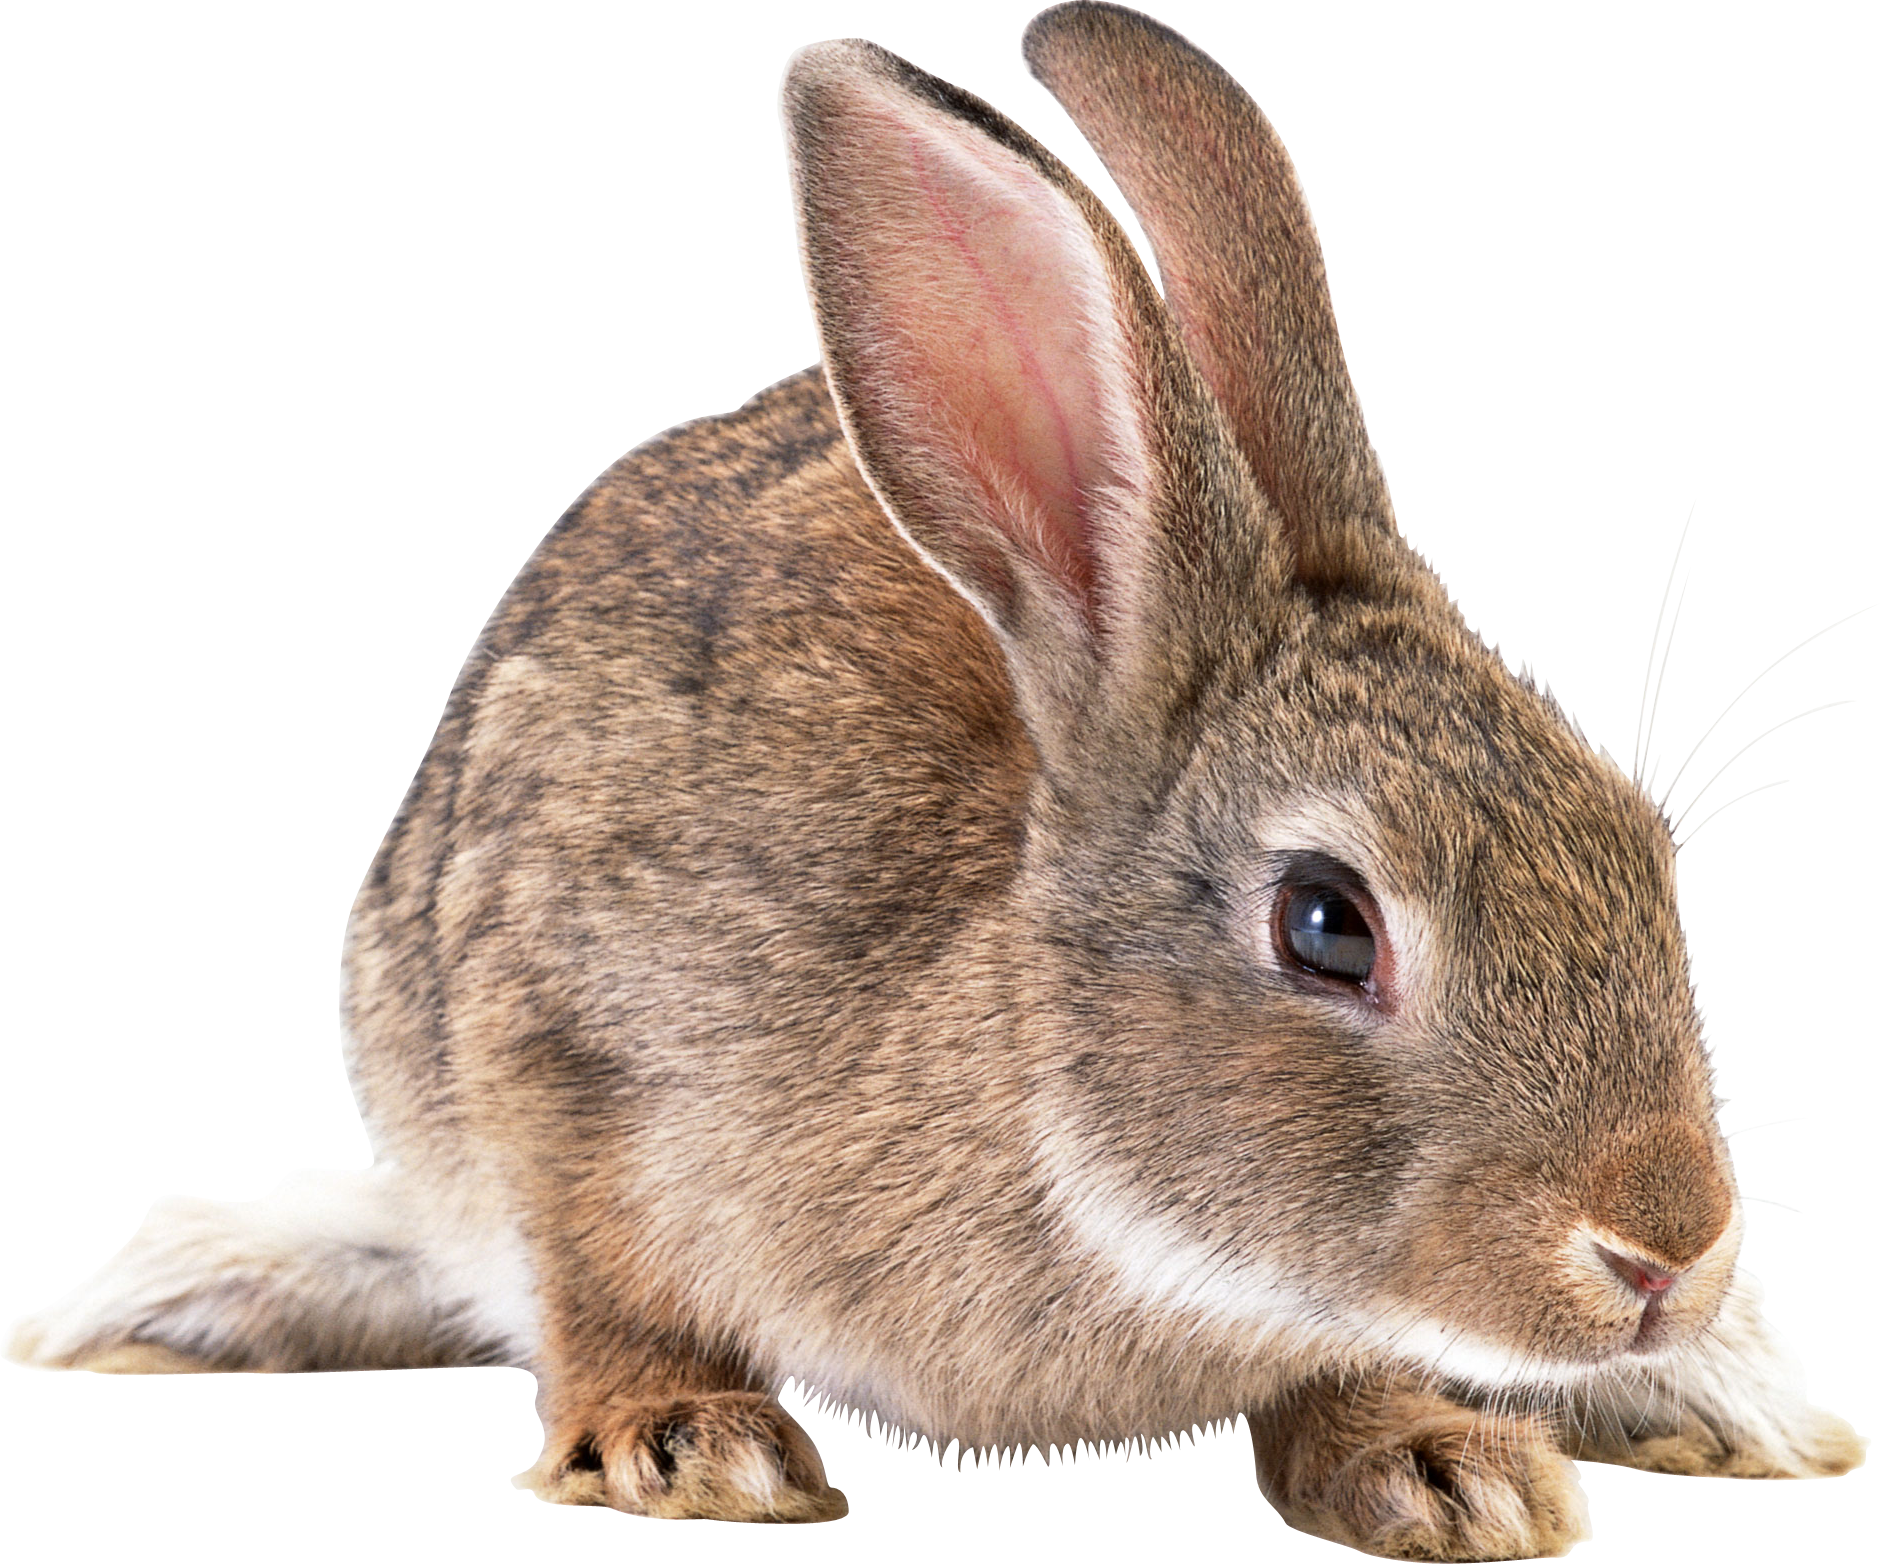 clipart free Png images free pictures. Bunnies clipart wild rabbit.